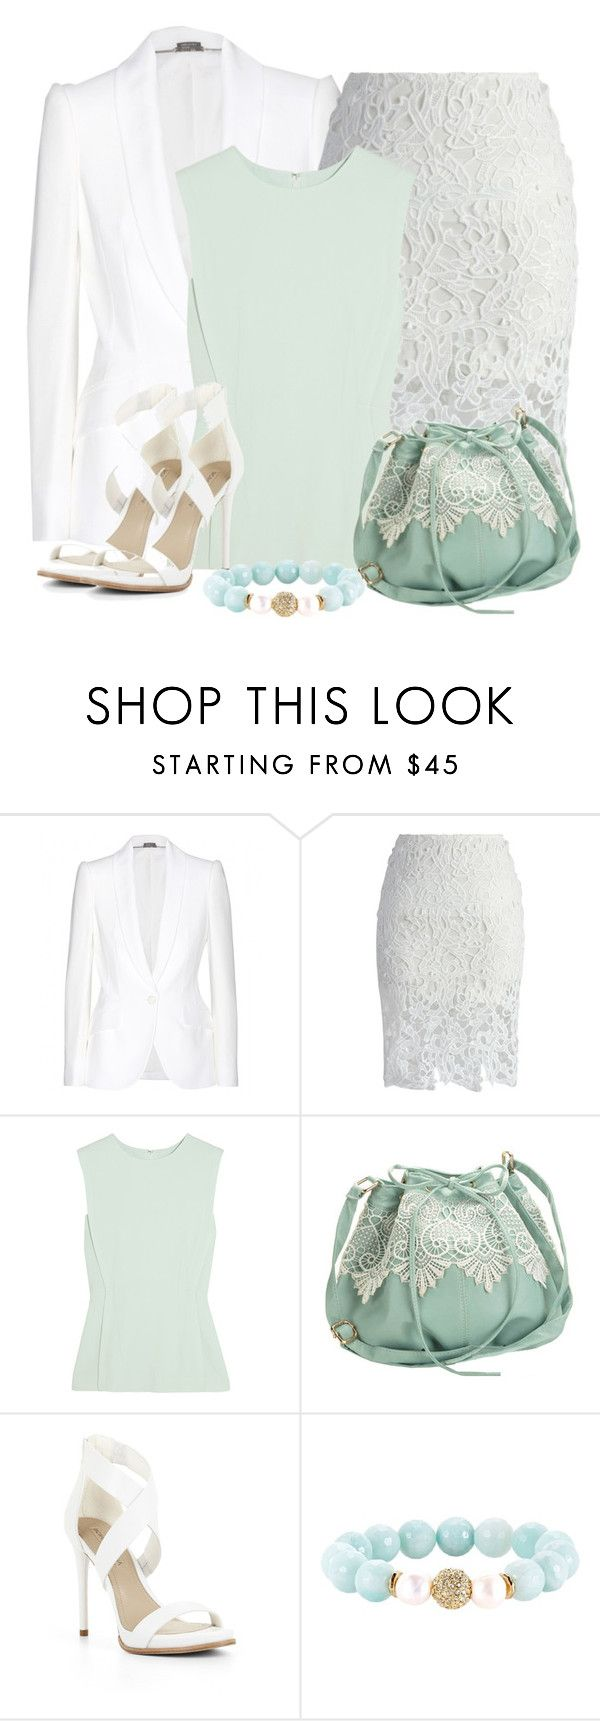 """""""Untitled #4639"""" by cassandra-cafone-wright ❤ liked on Polyvore featuring Alexander McQueen, Chicwish, Alexander Wang, BCBGMAXAZRIA and Devoted"""